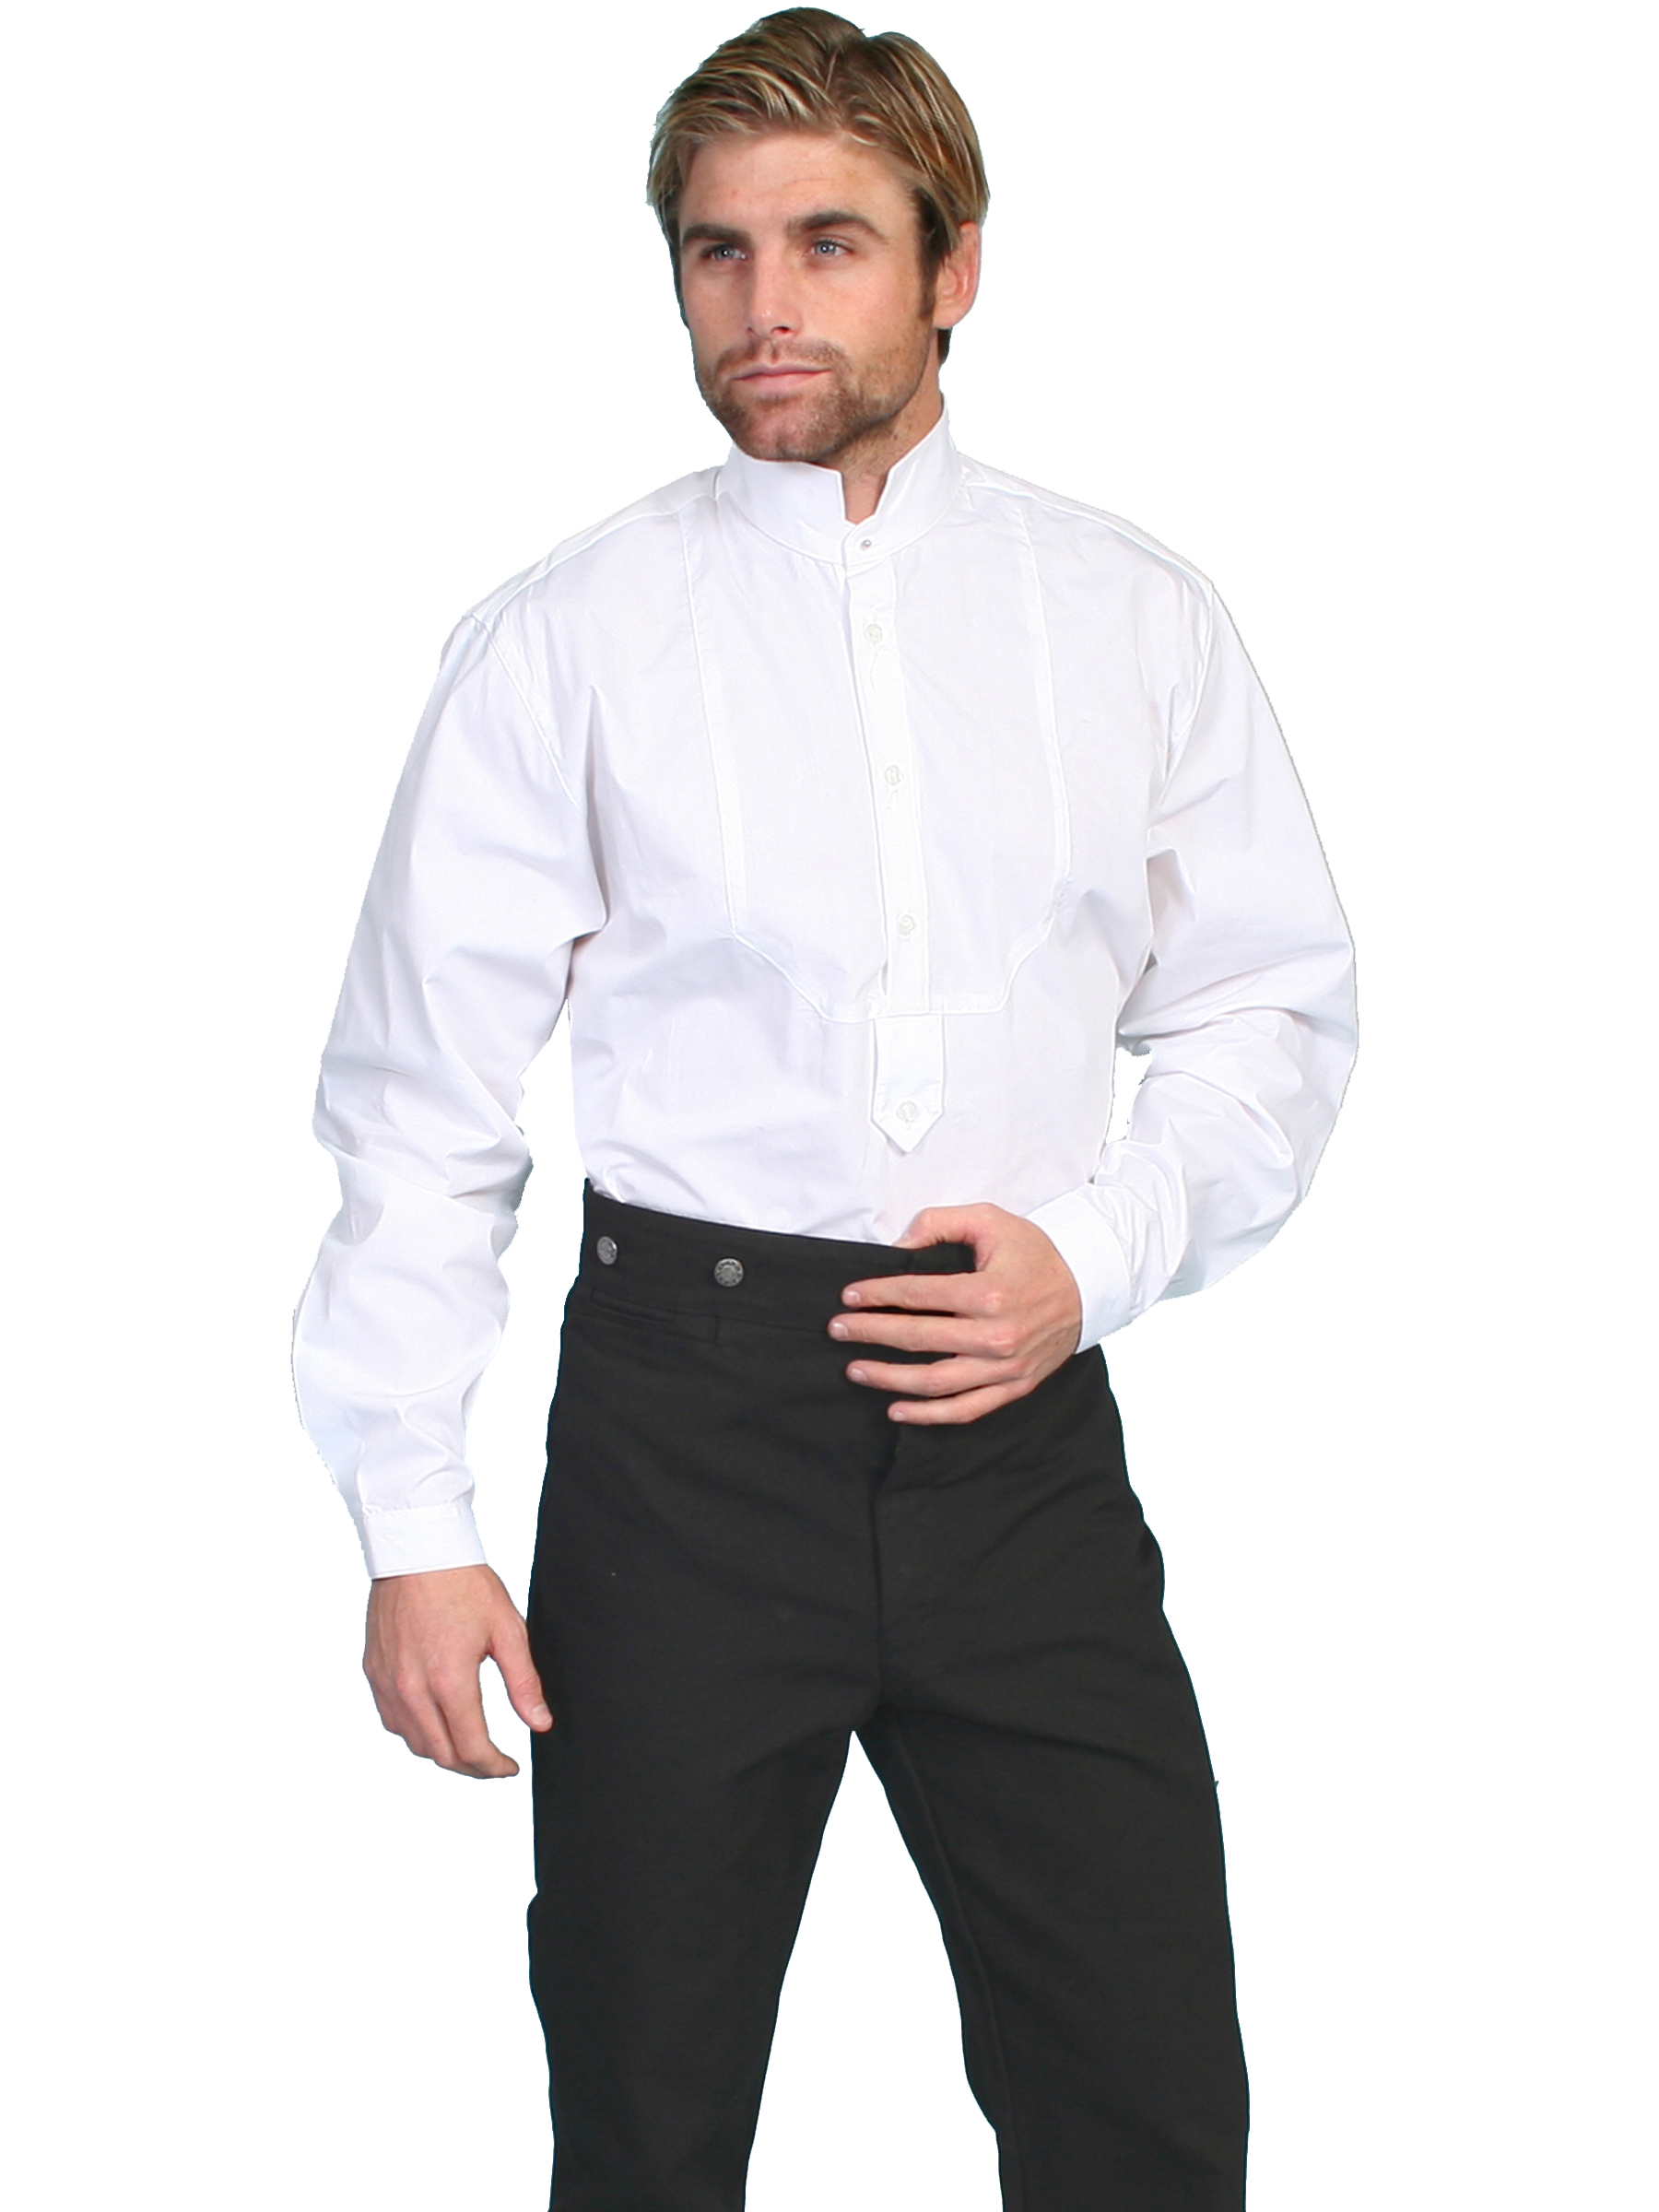 Classic shirt with stand-up collar and inset bib